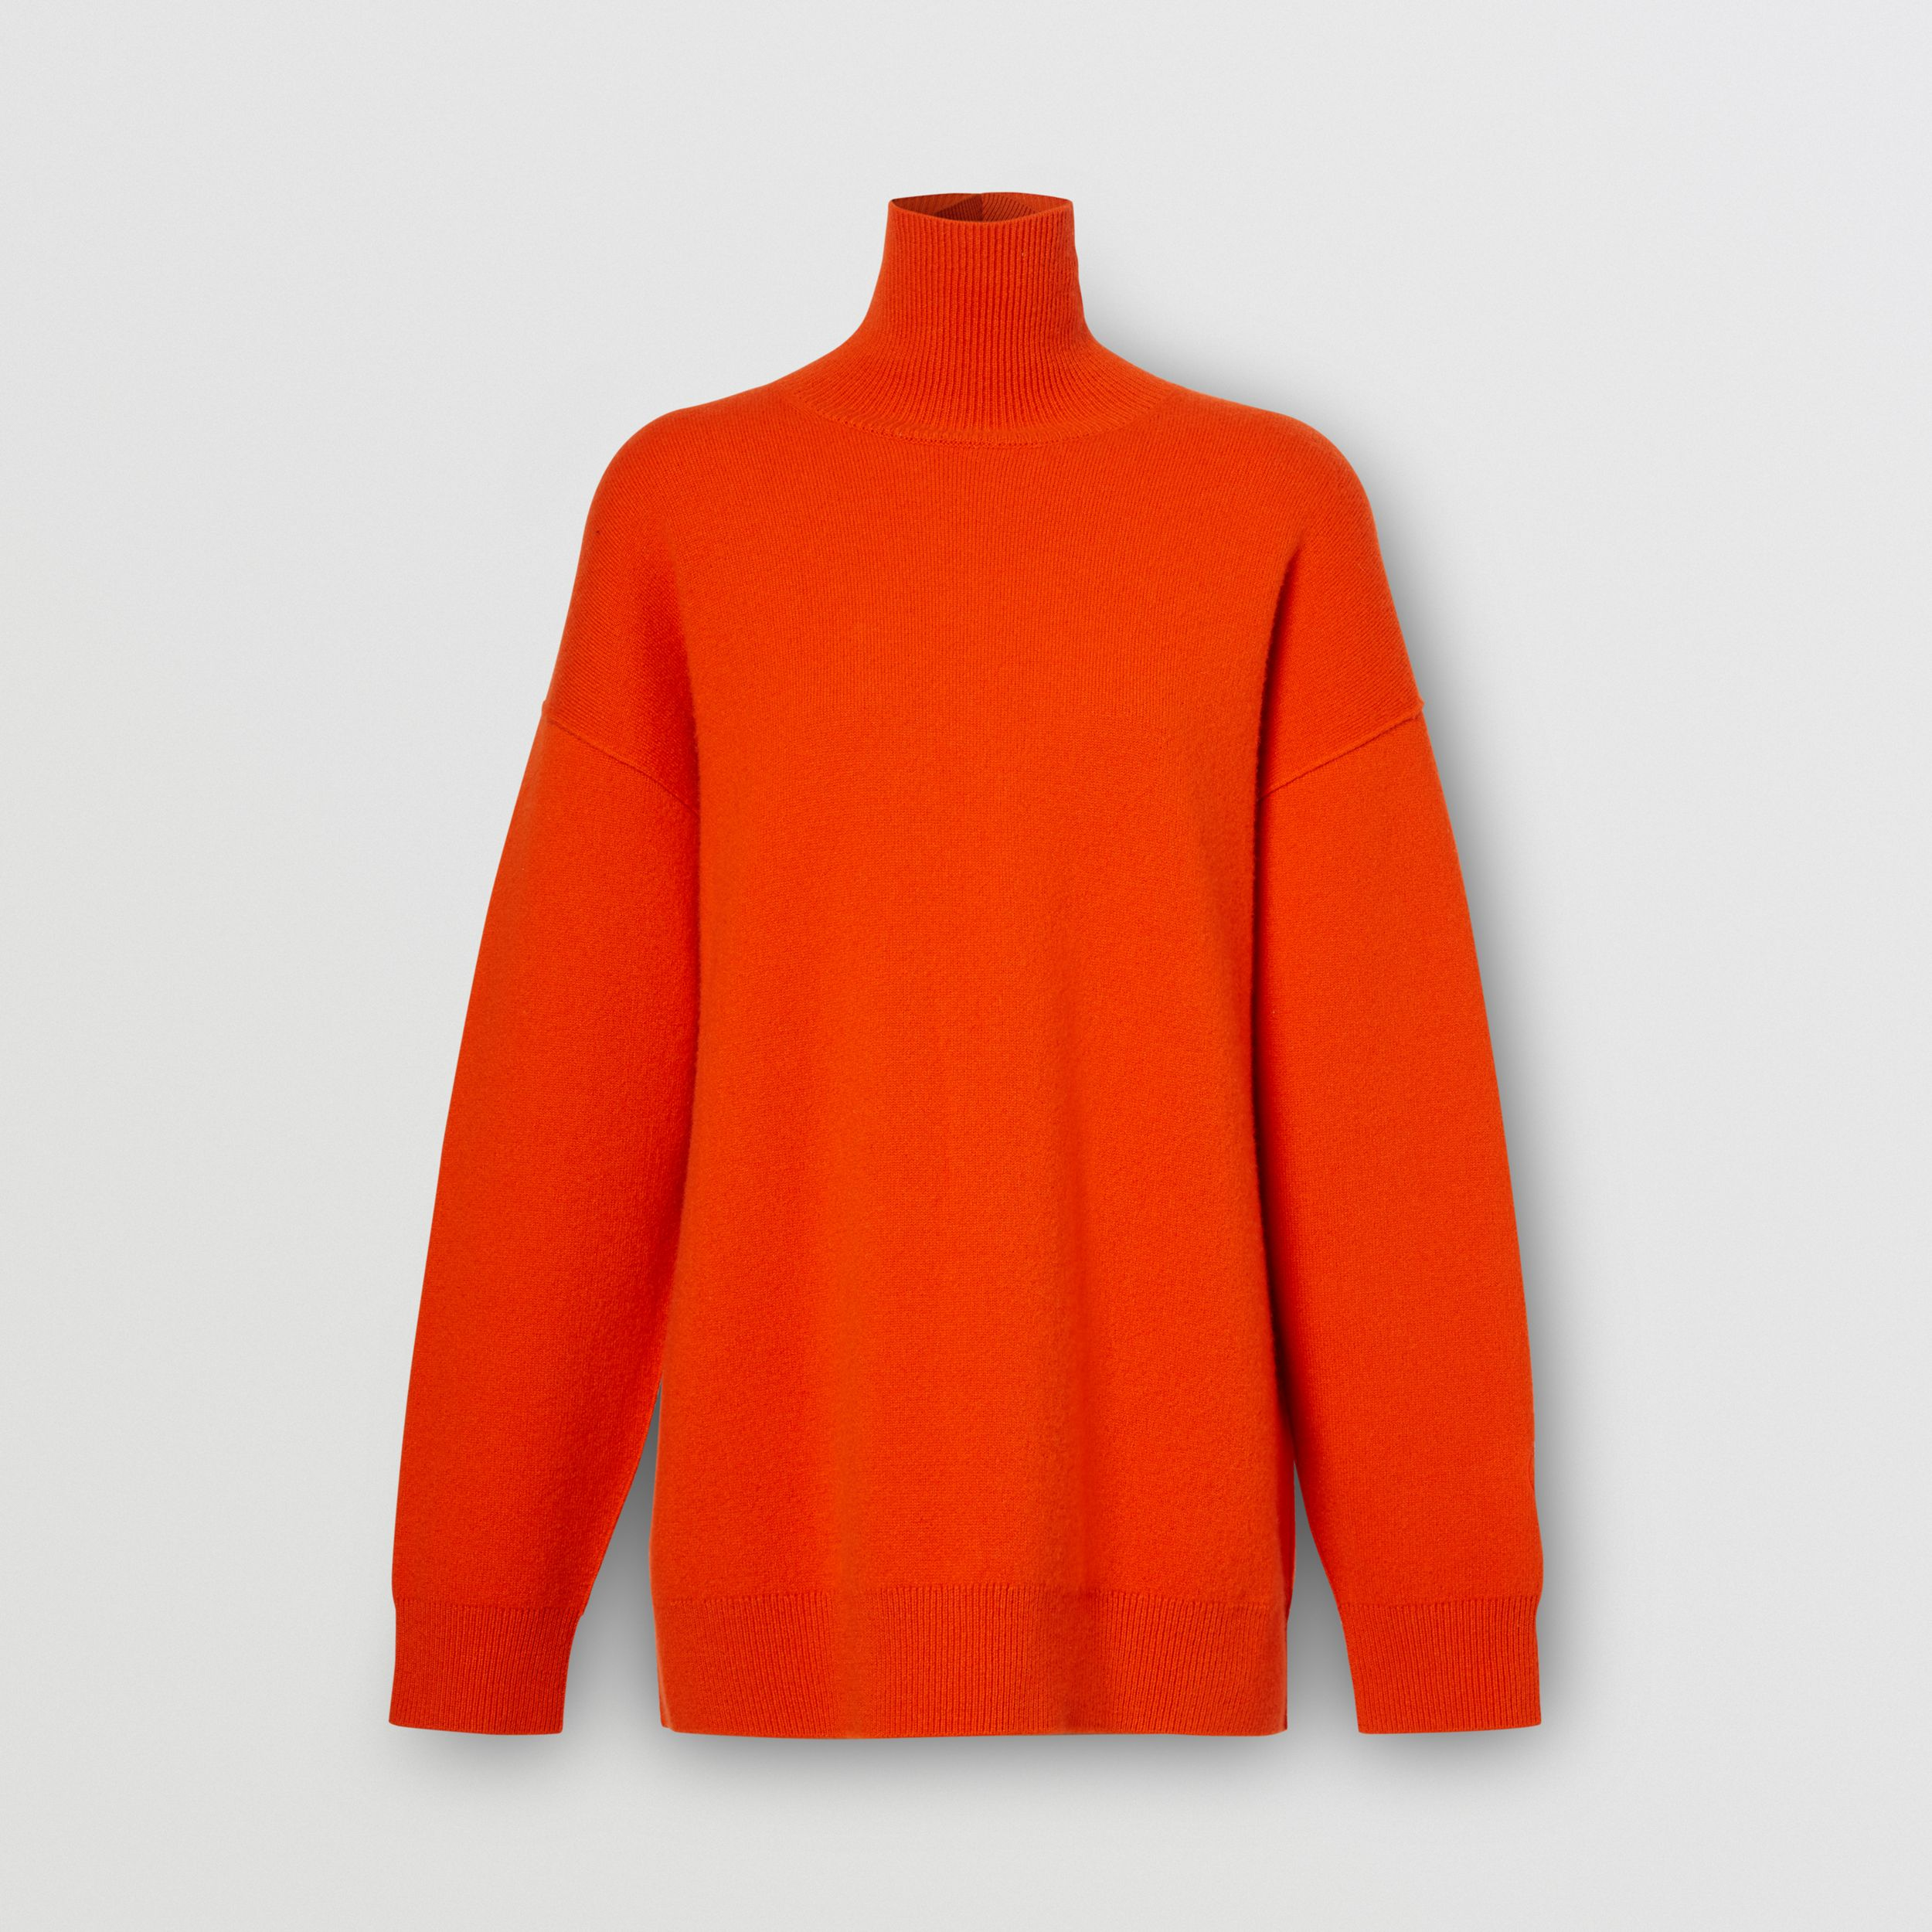 Monogram Motif Cashmere Blend Funnel Neck Sweater in Bright Orange - Women | Burberry - 4